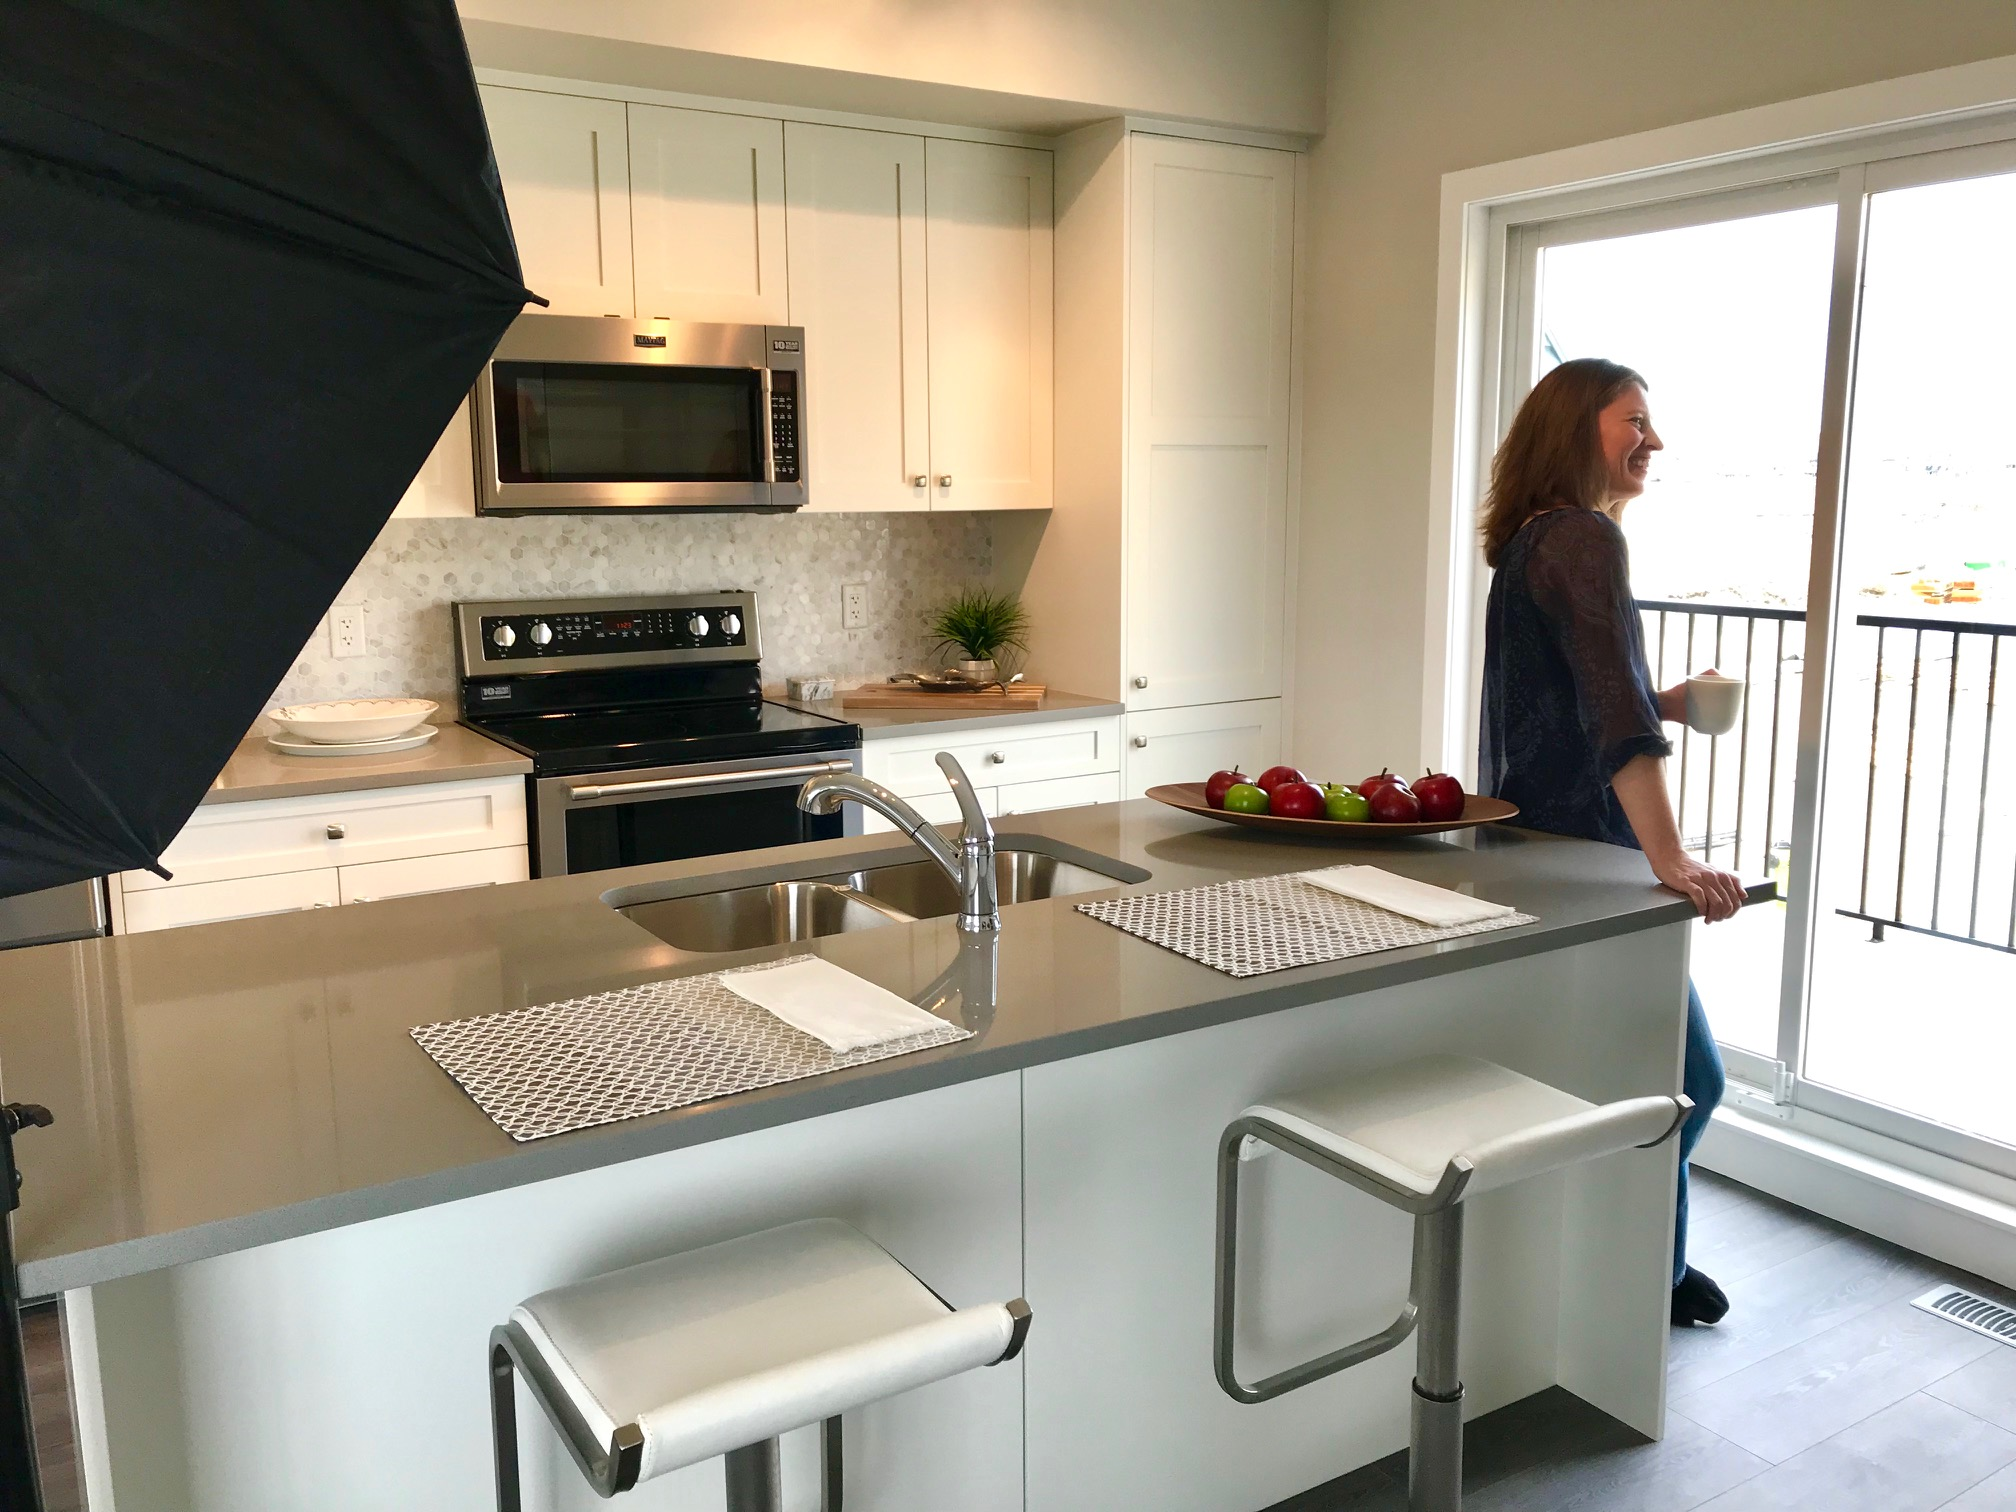 PHOTO SHOOT: Suzanne in the kitchen at Canals